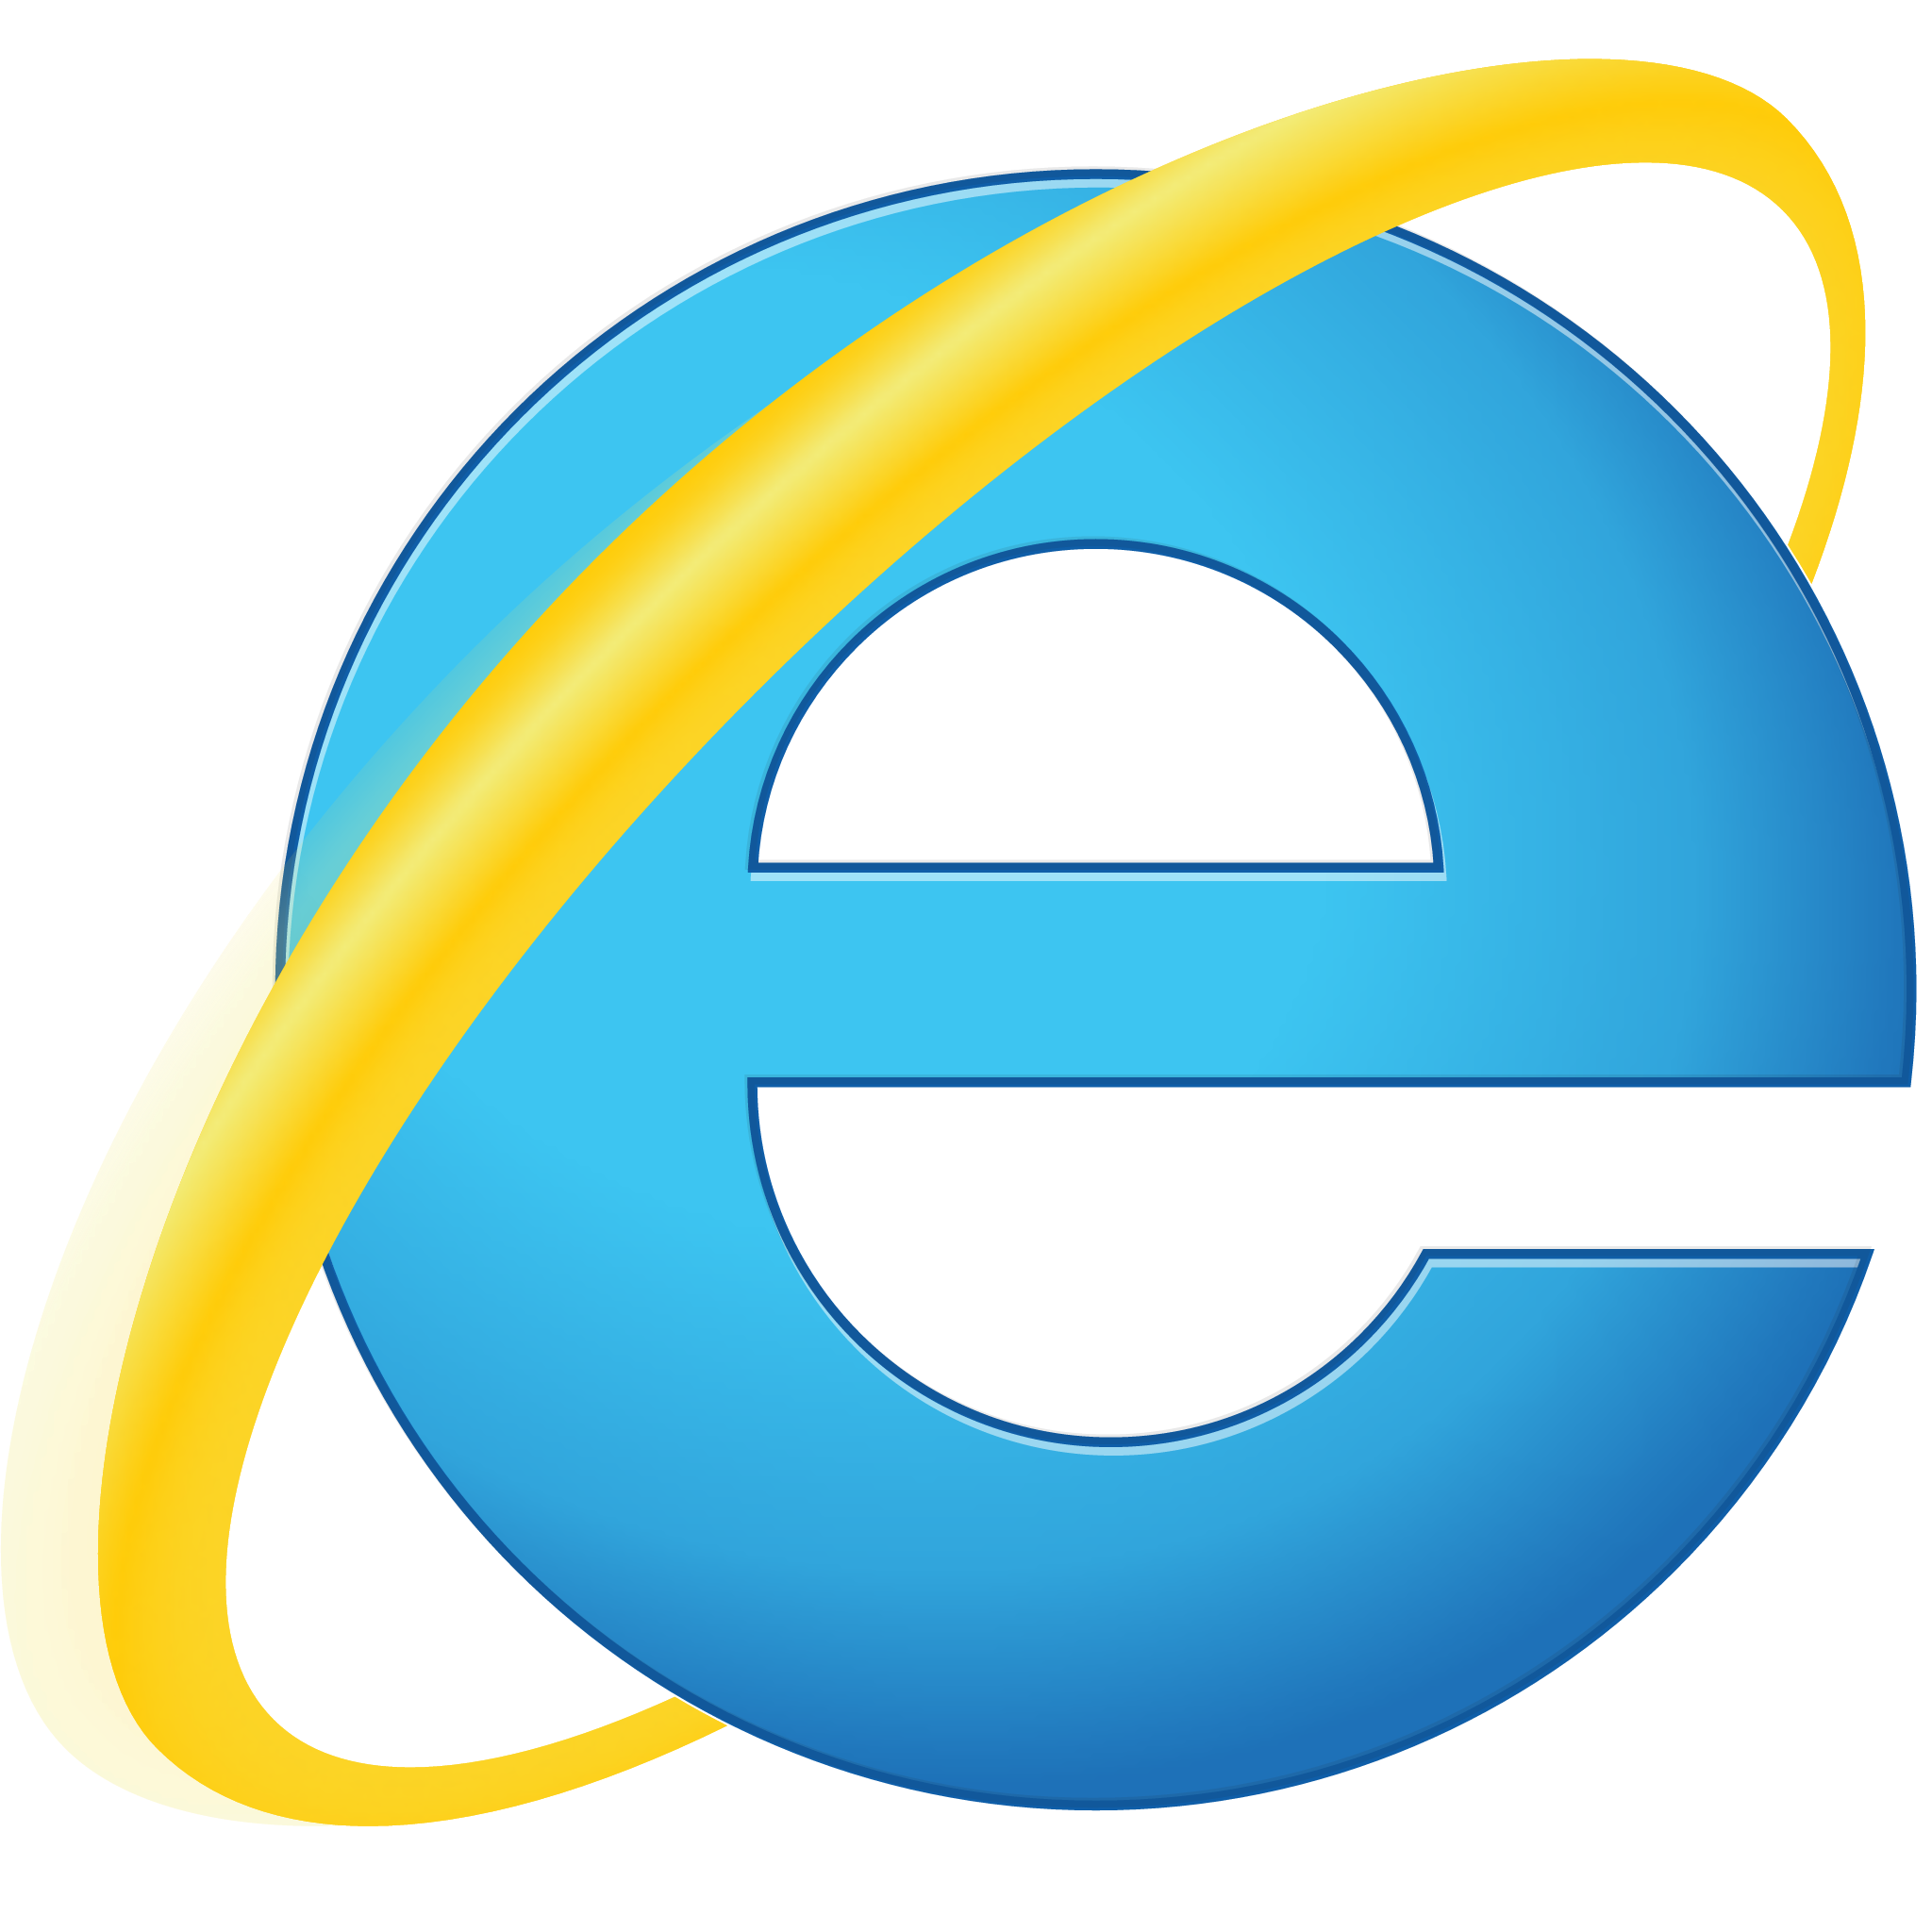 La fin d 39 internet explorer pr vue informatique sans for Probleme ouverture fenetre internet explorer